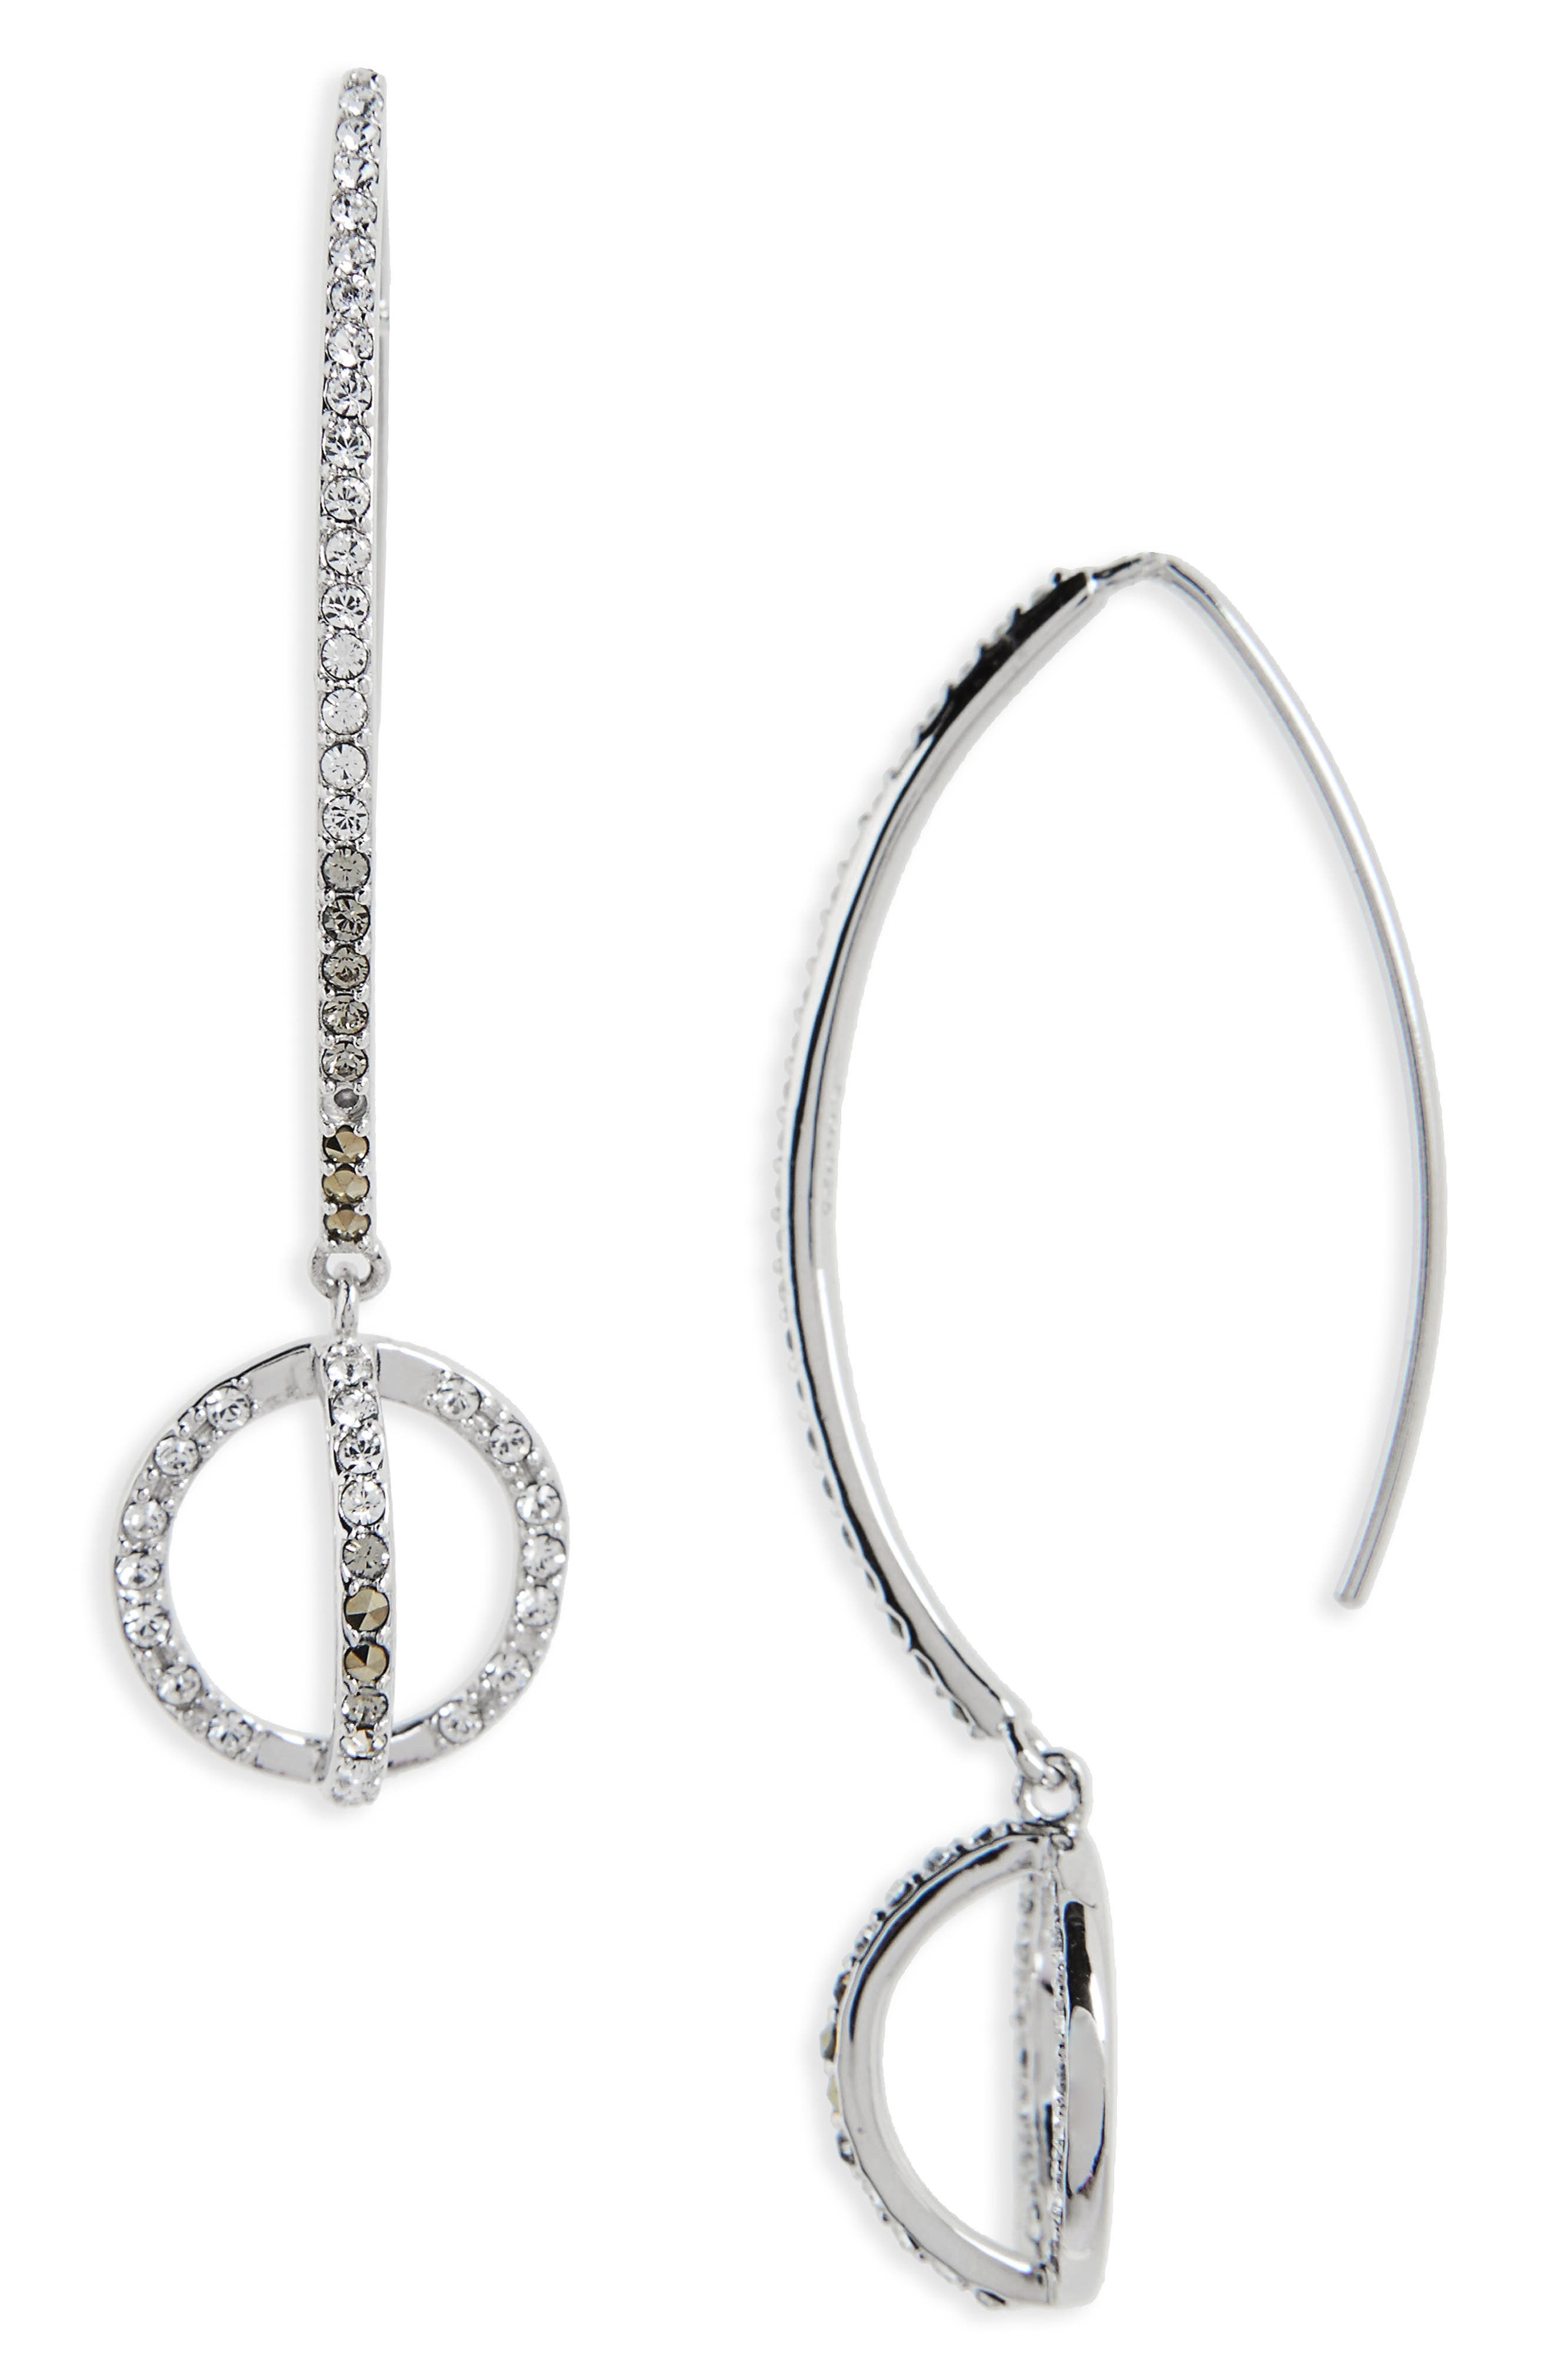 Main Image - Judith Jack Silver Sparkle Threader Earrings